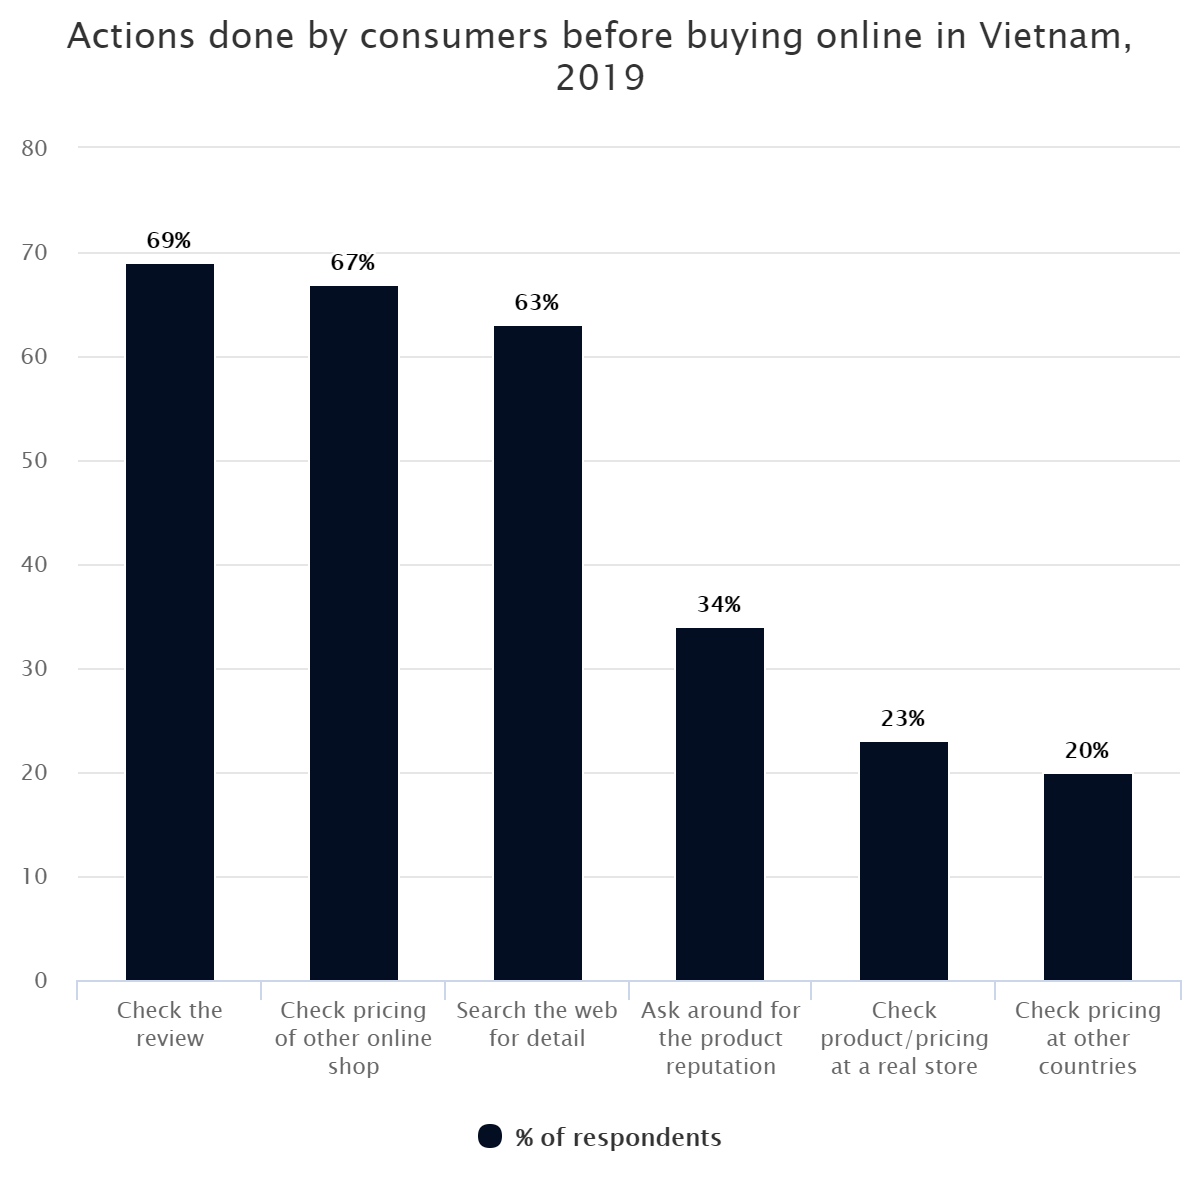 Actions done by consumers before buying online in Vietnam, 2019